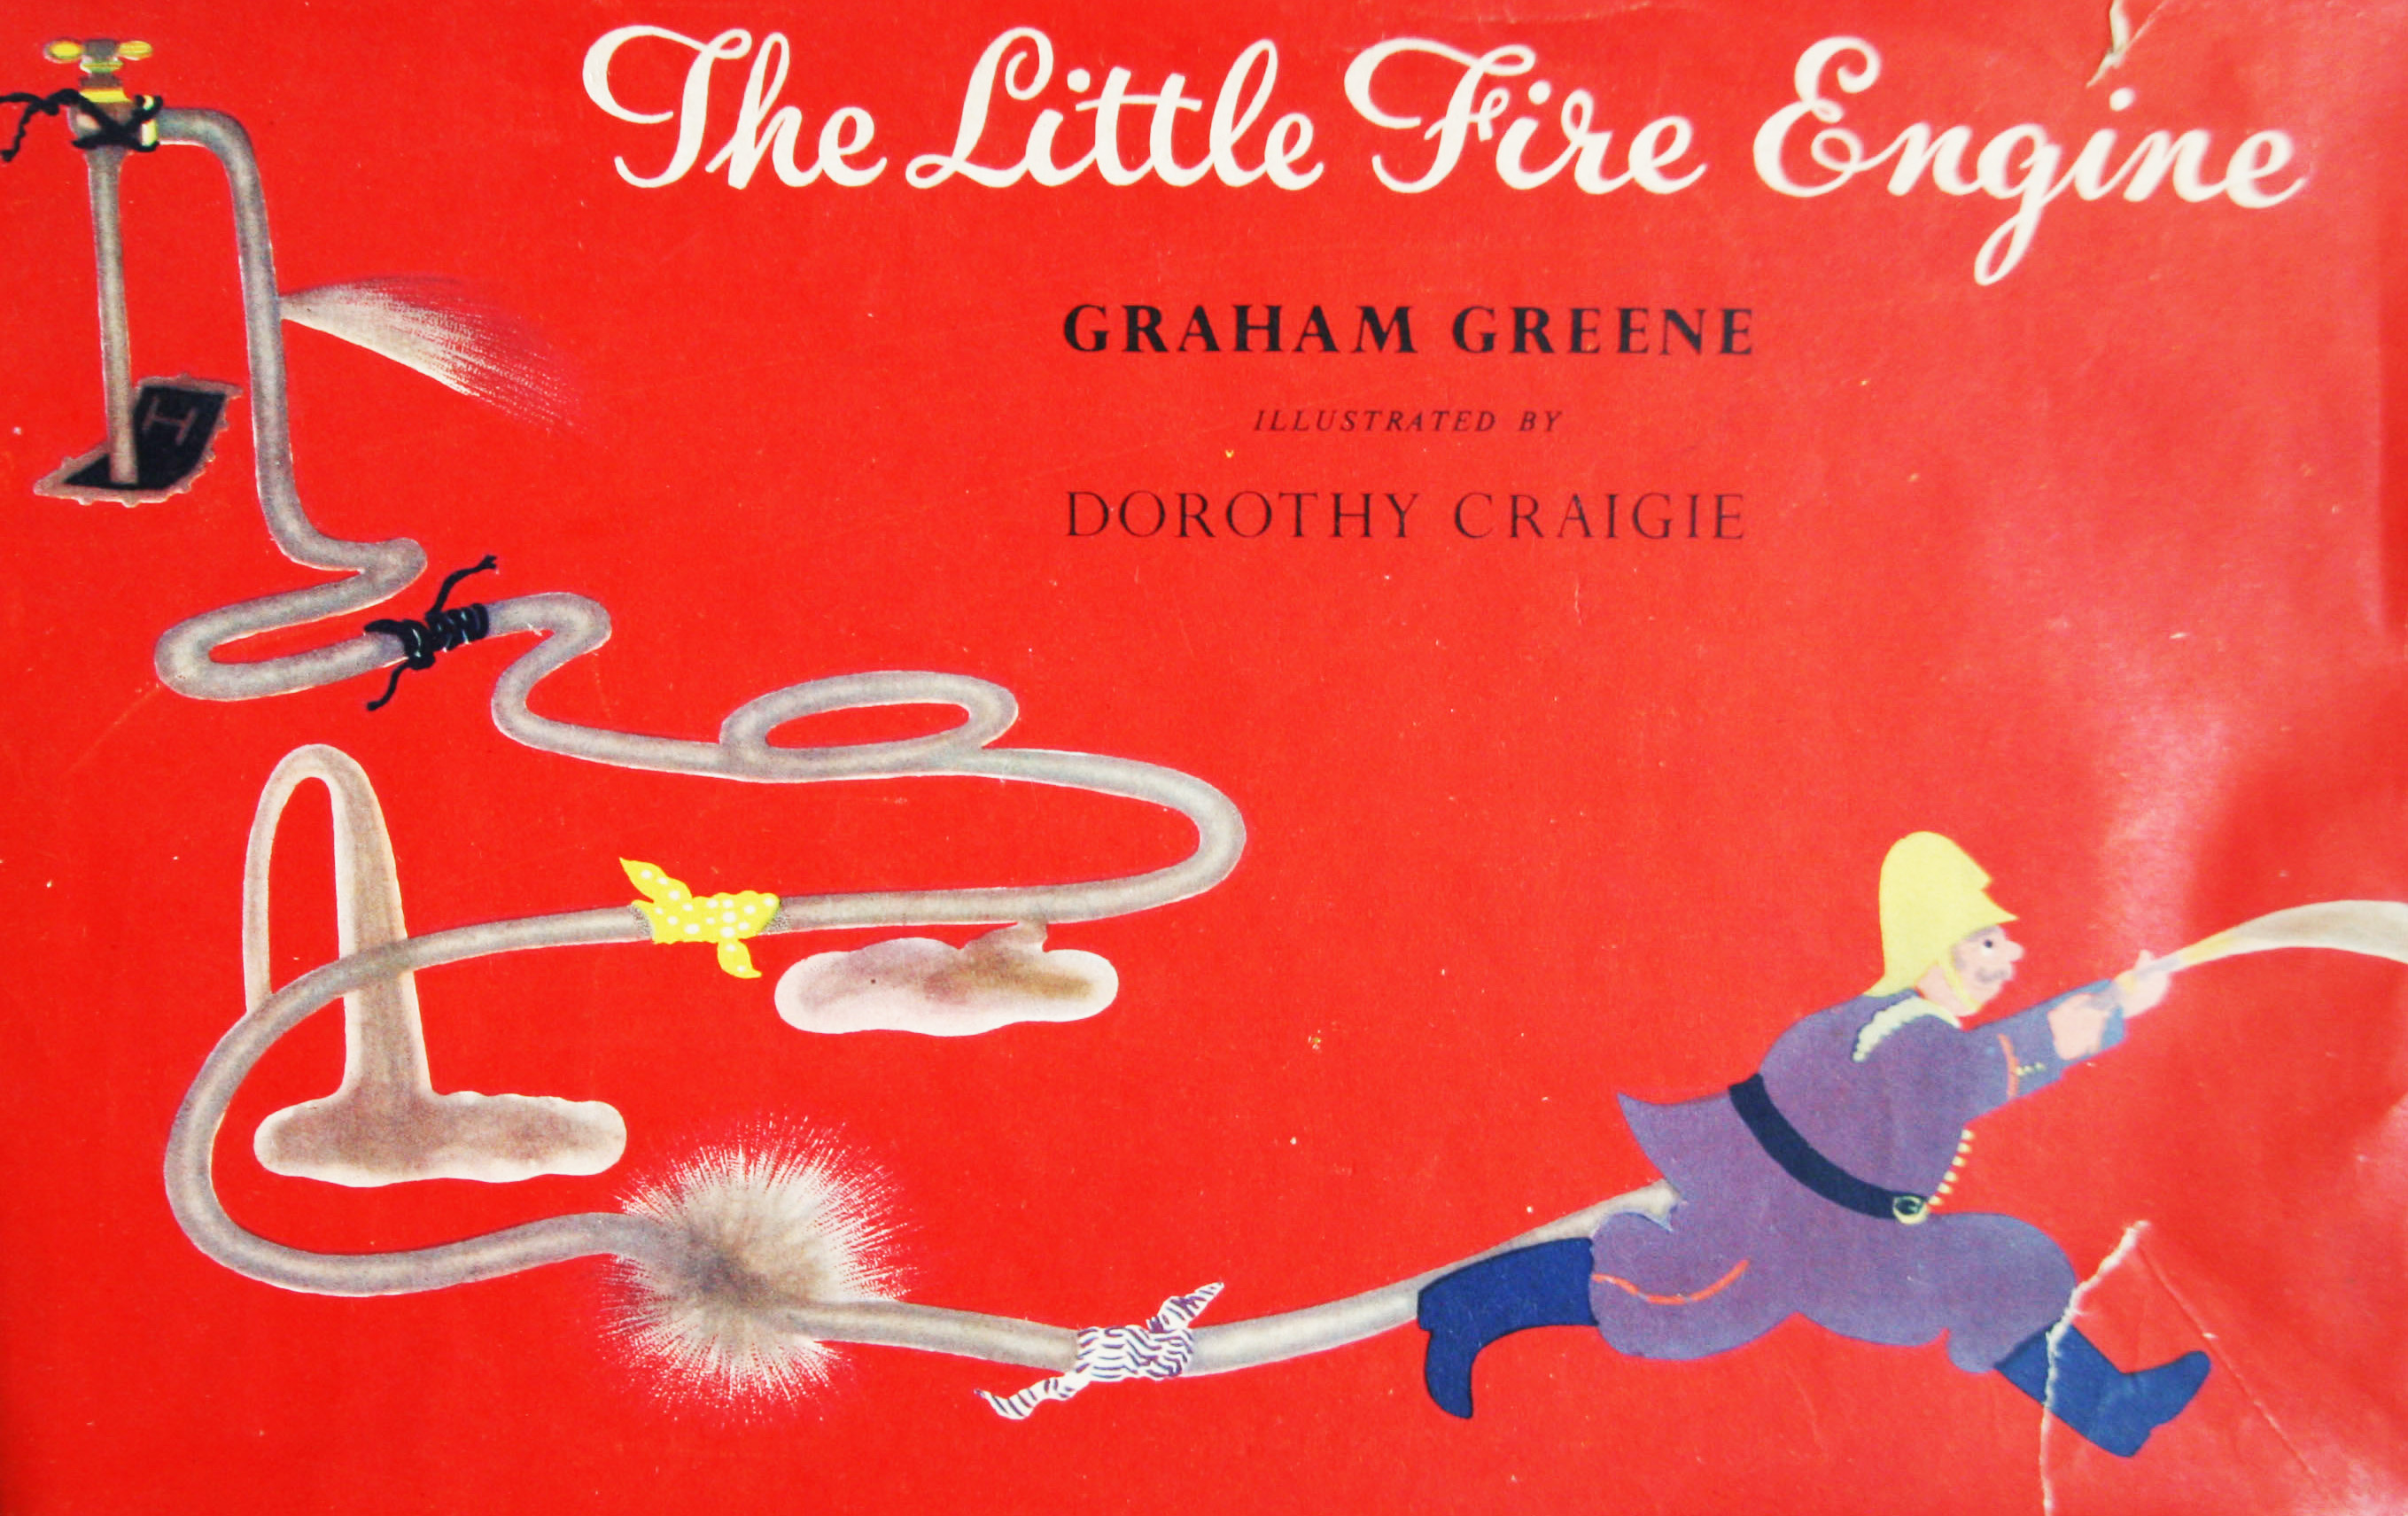 graham greene the little fire engine first edition